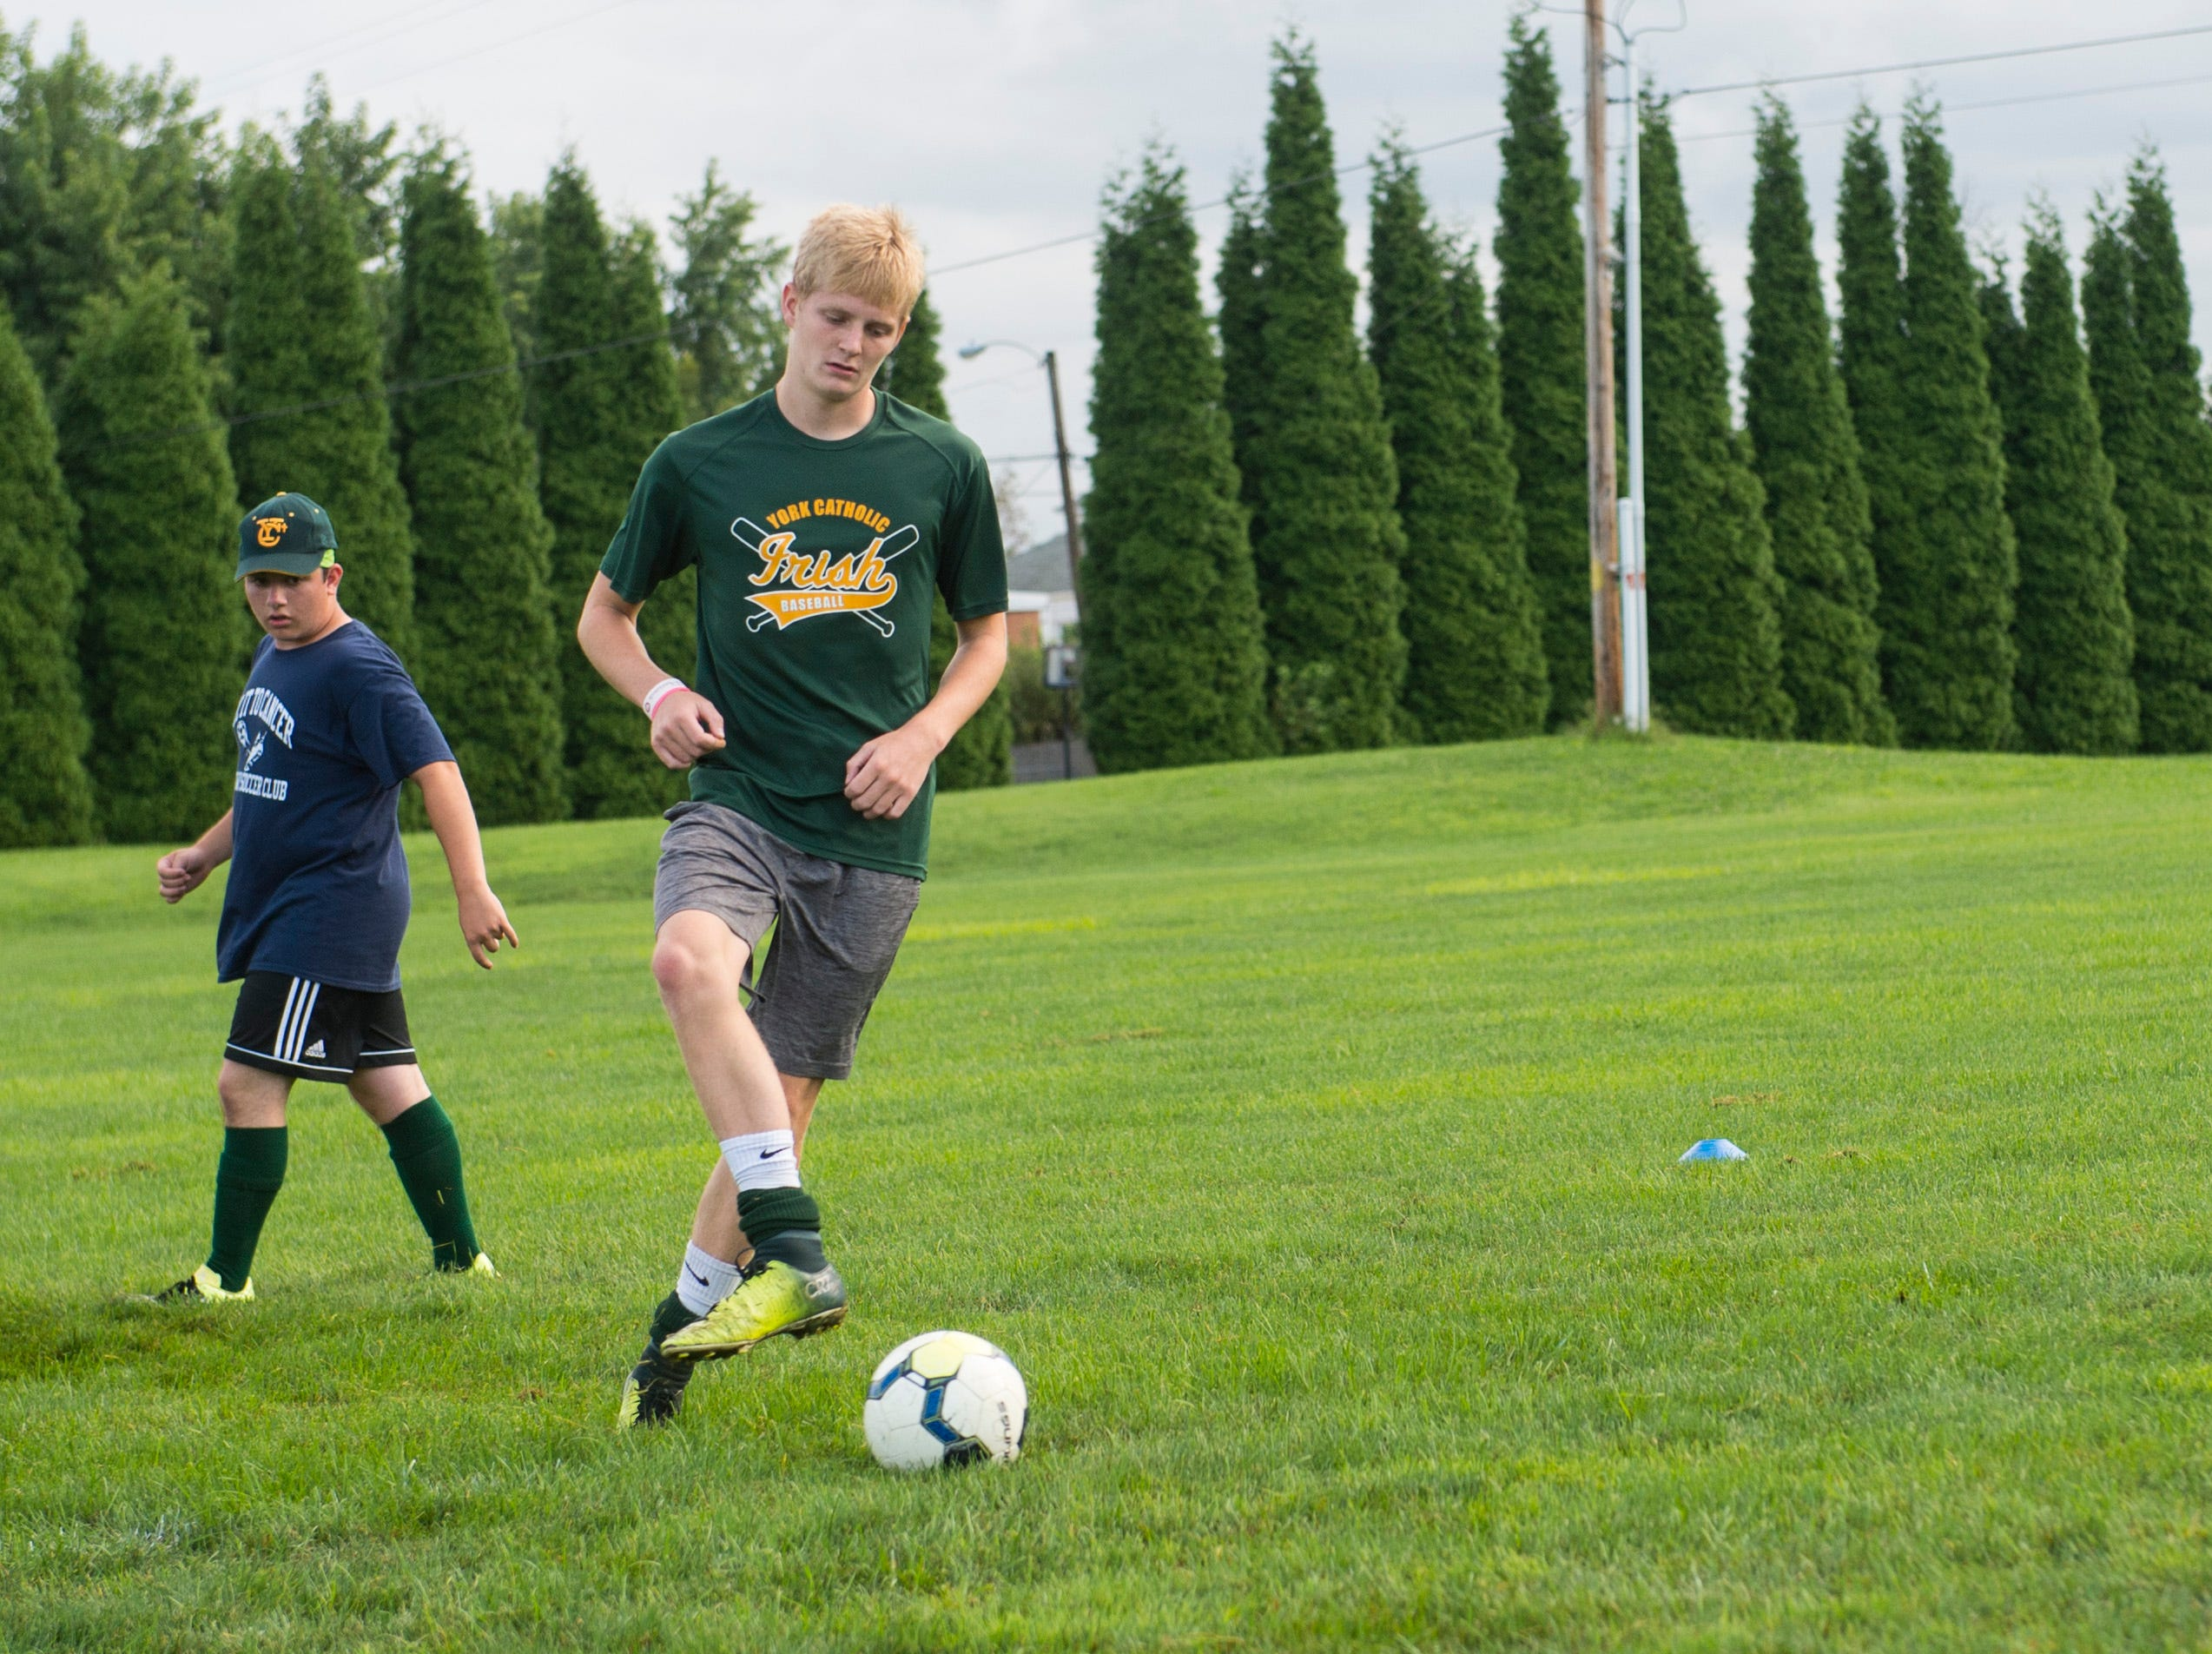 The York Catholic boys' soccer team spent the beginning part of practice in one and two-touch passing drills.